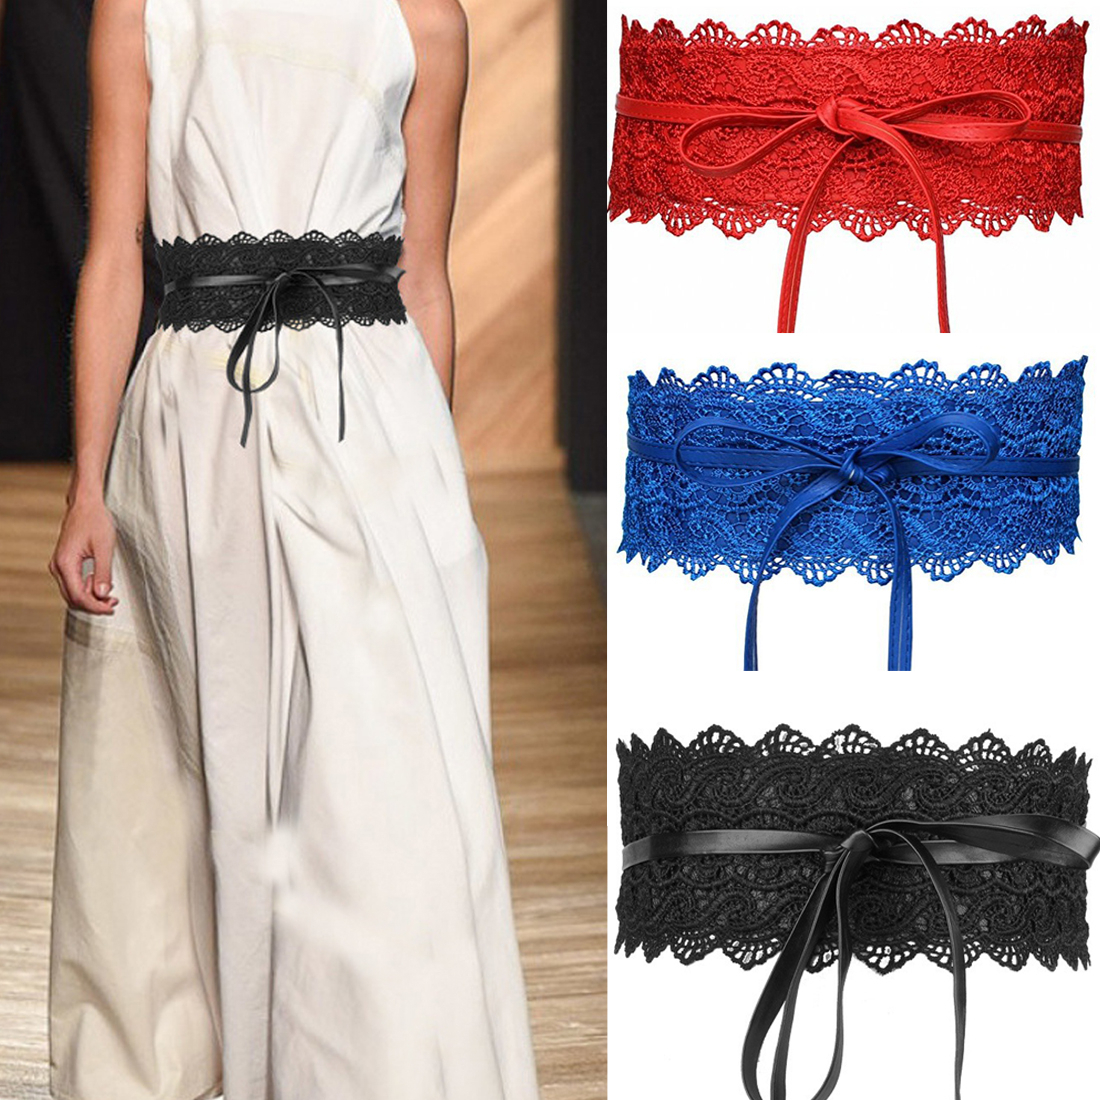 2019 New Wide Corset Lace Belt Female Self Tie Waistband Belts For Women Wedding Dress Waist Band